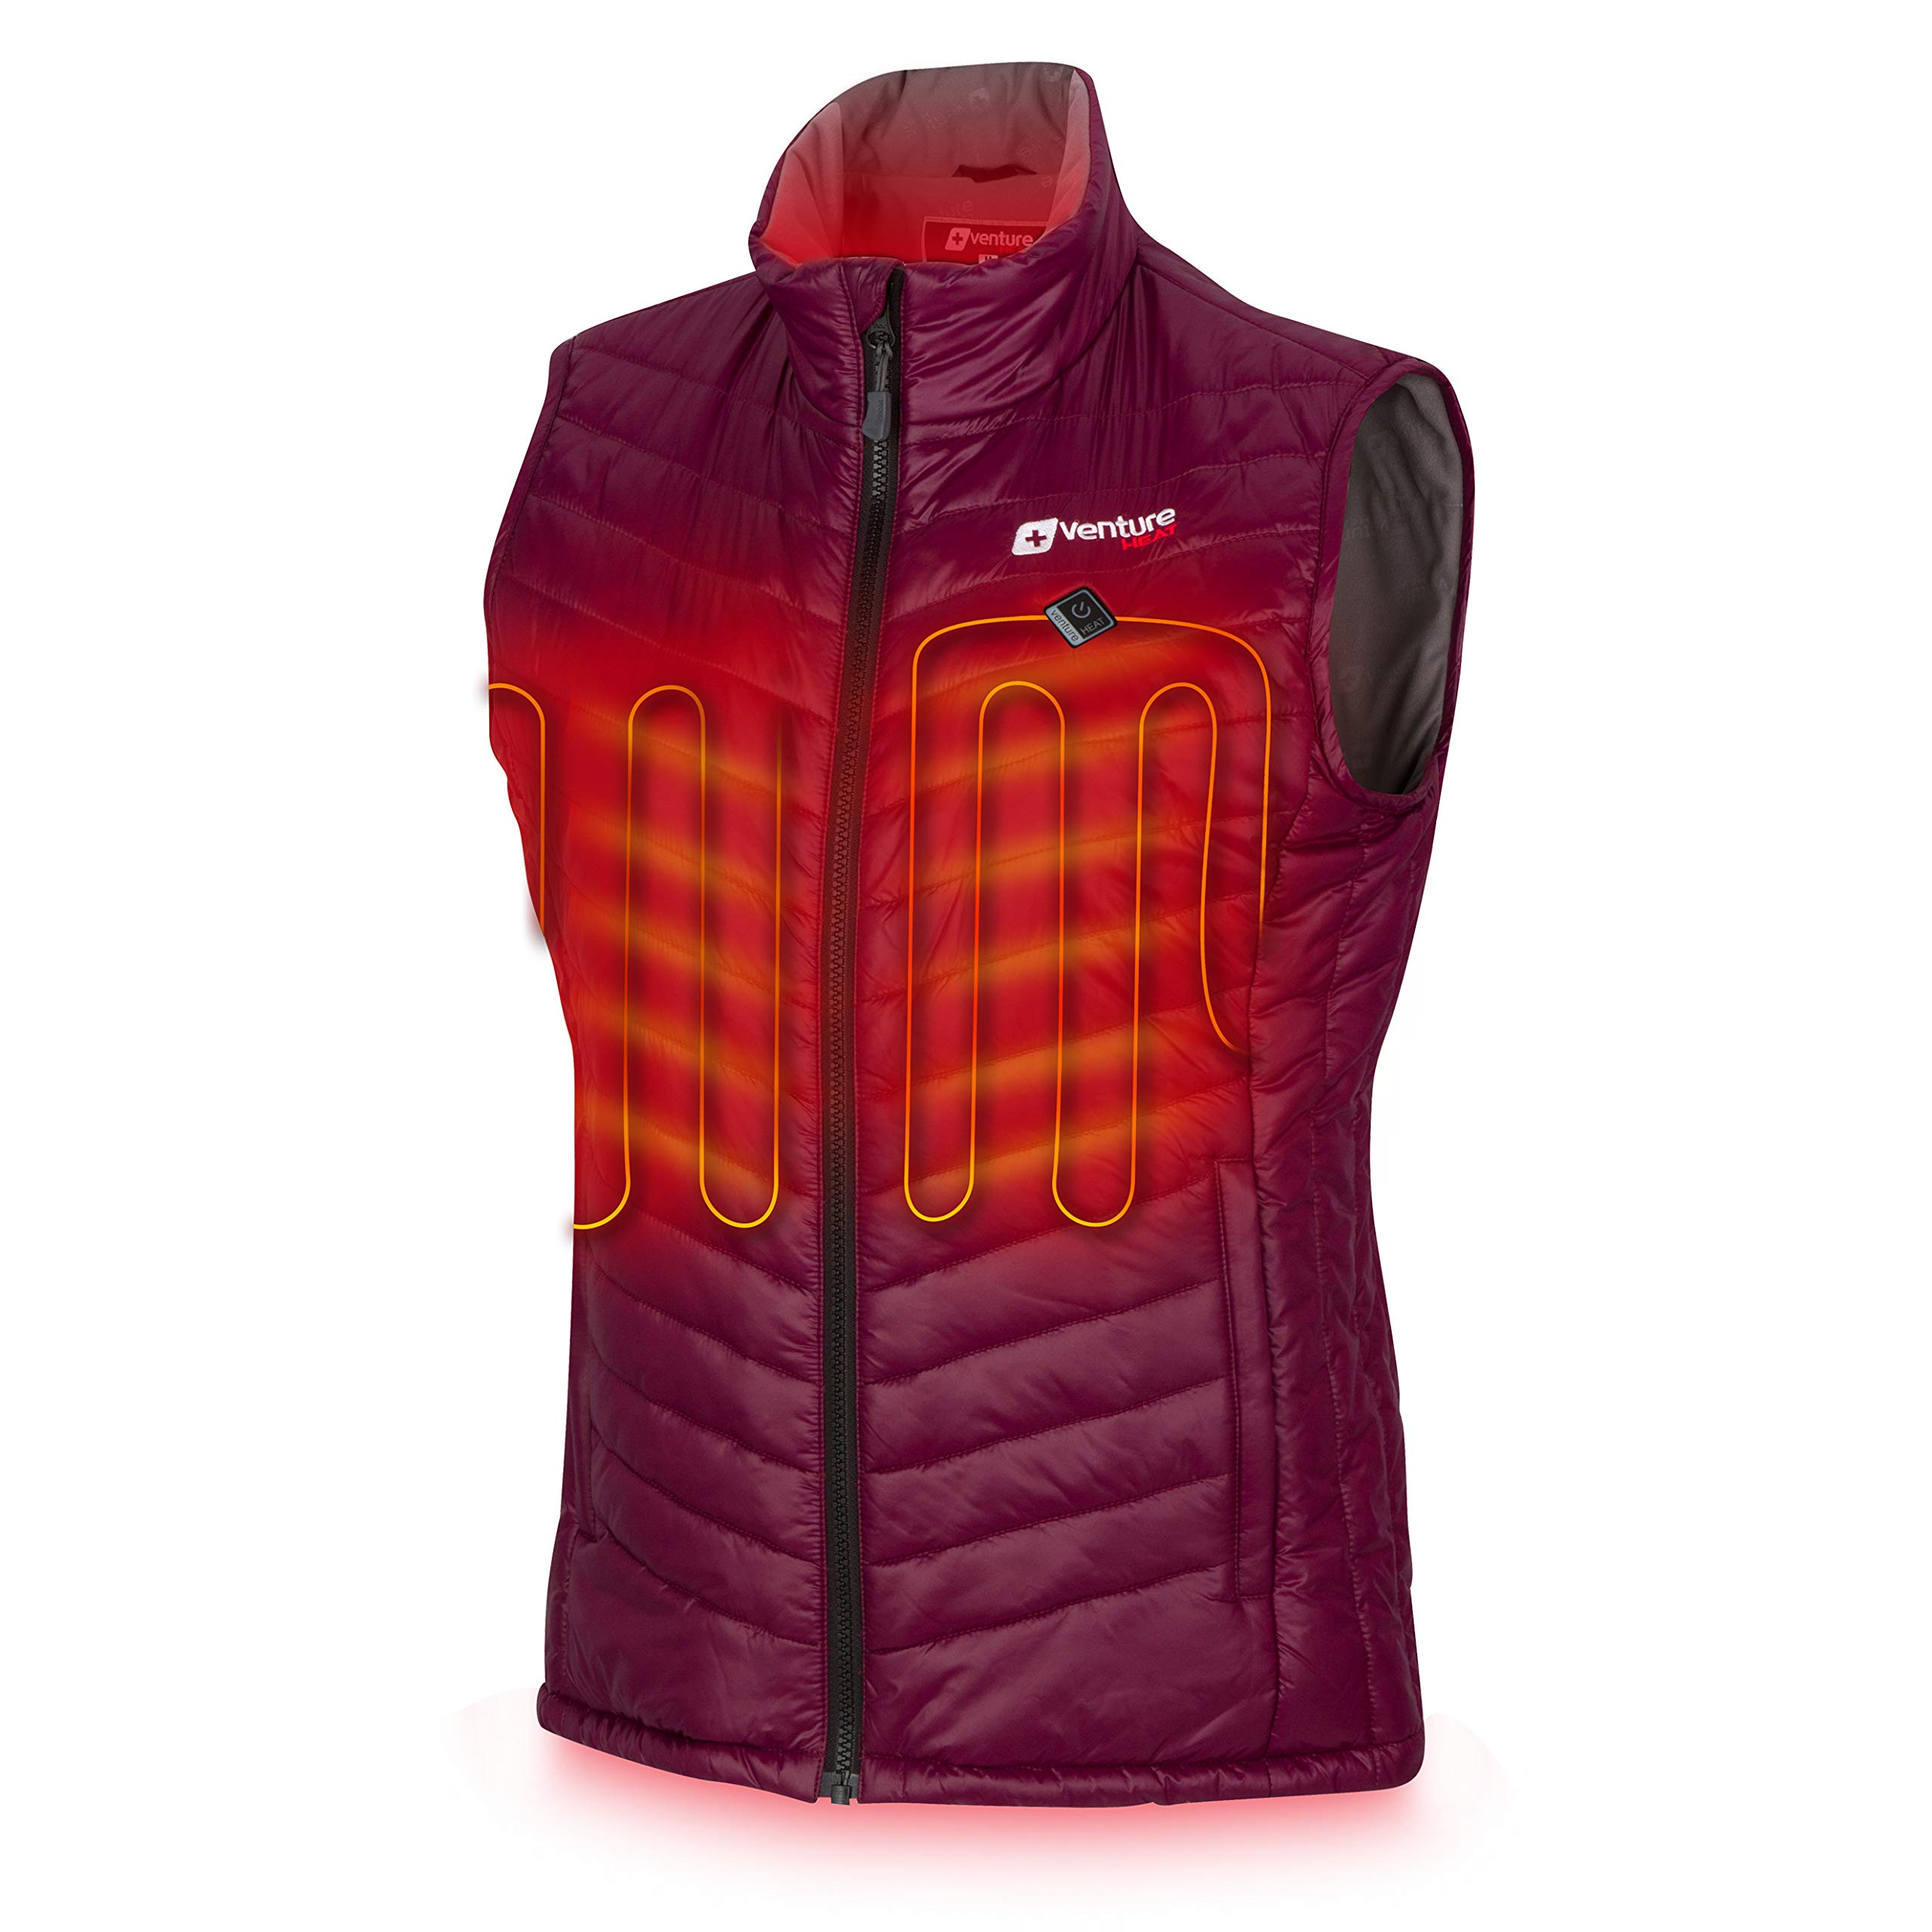 Venture Heat Women's Heated Vest with Battery Pack - Insulated Electric Jacket, Puffer Vest, Roam 2.0 (S, Plum) by Venture Heat